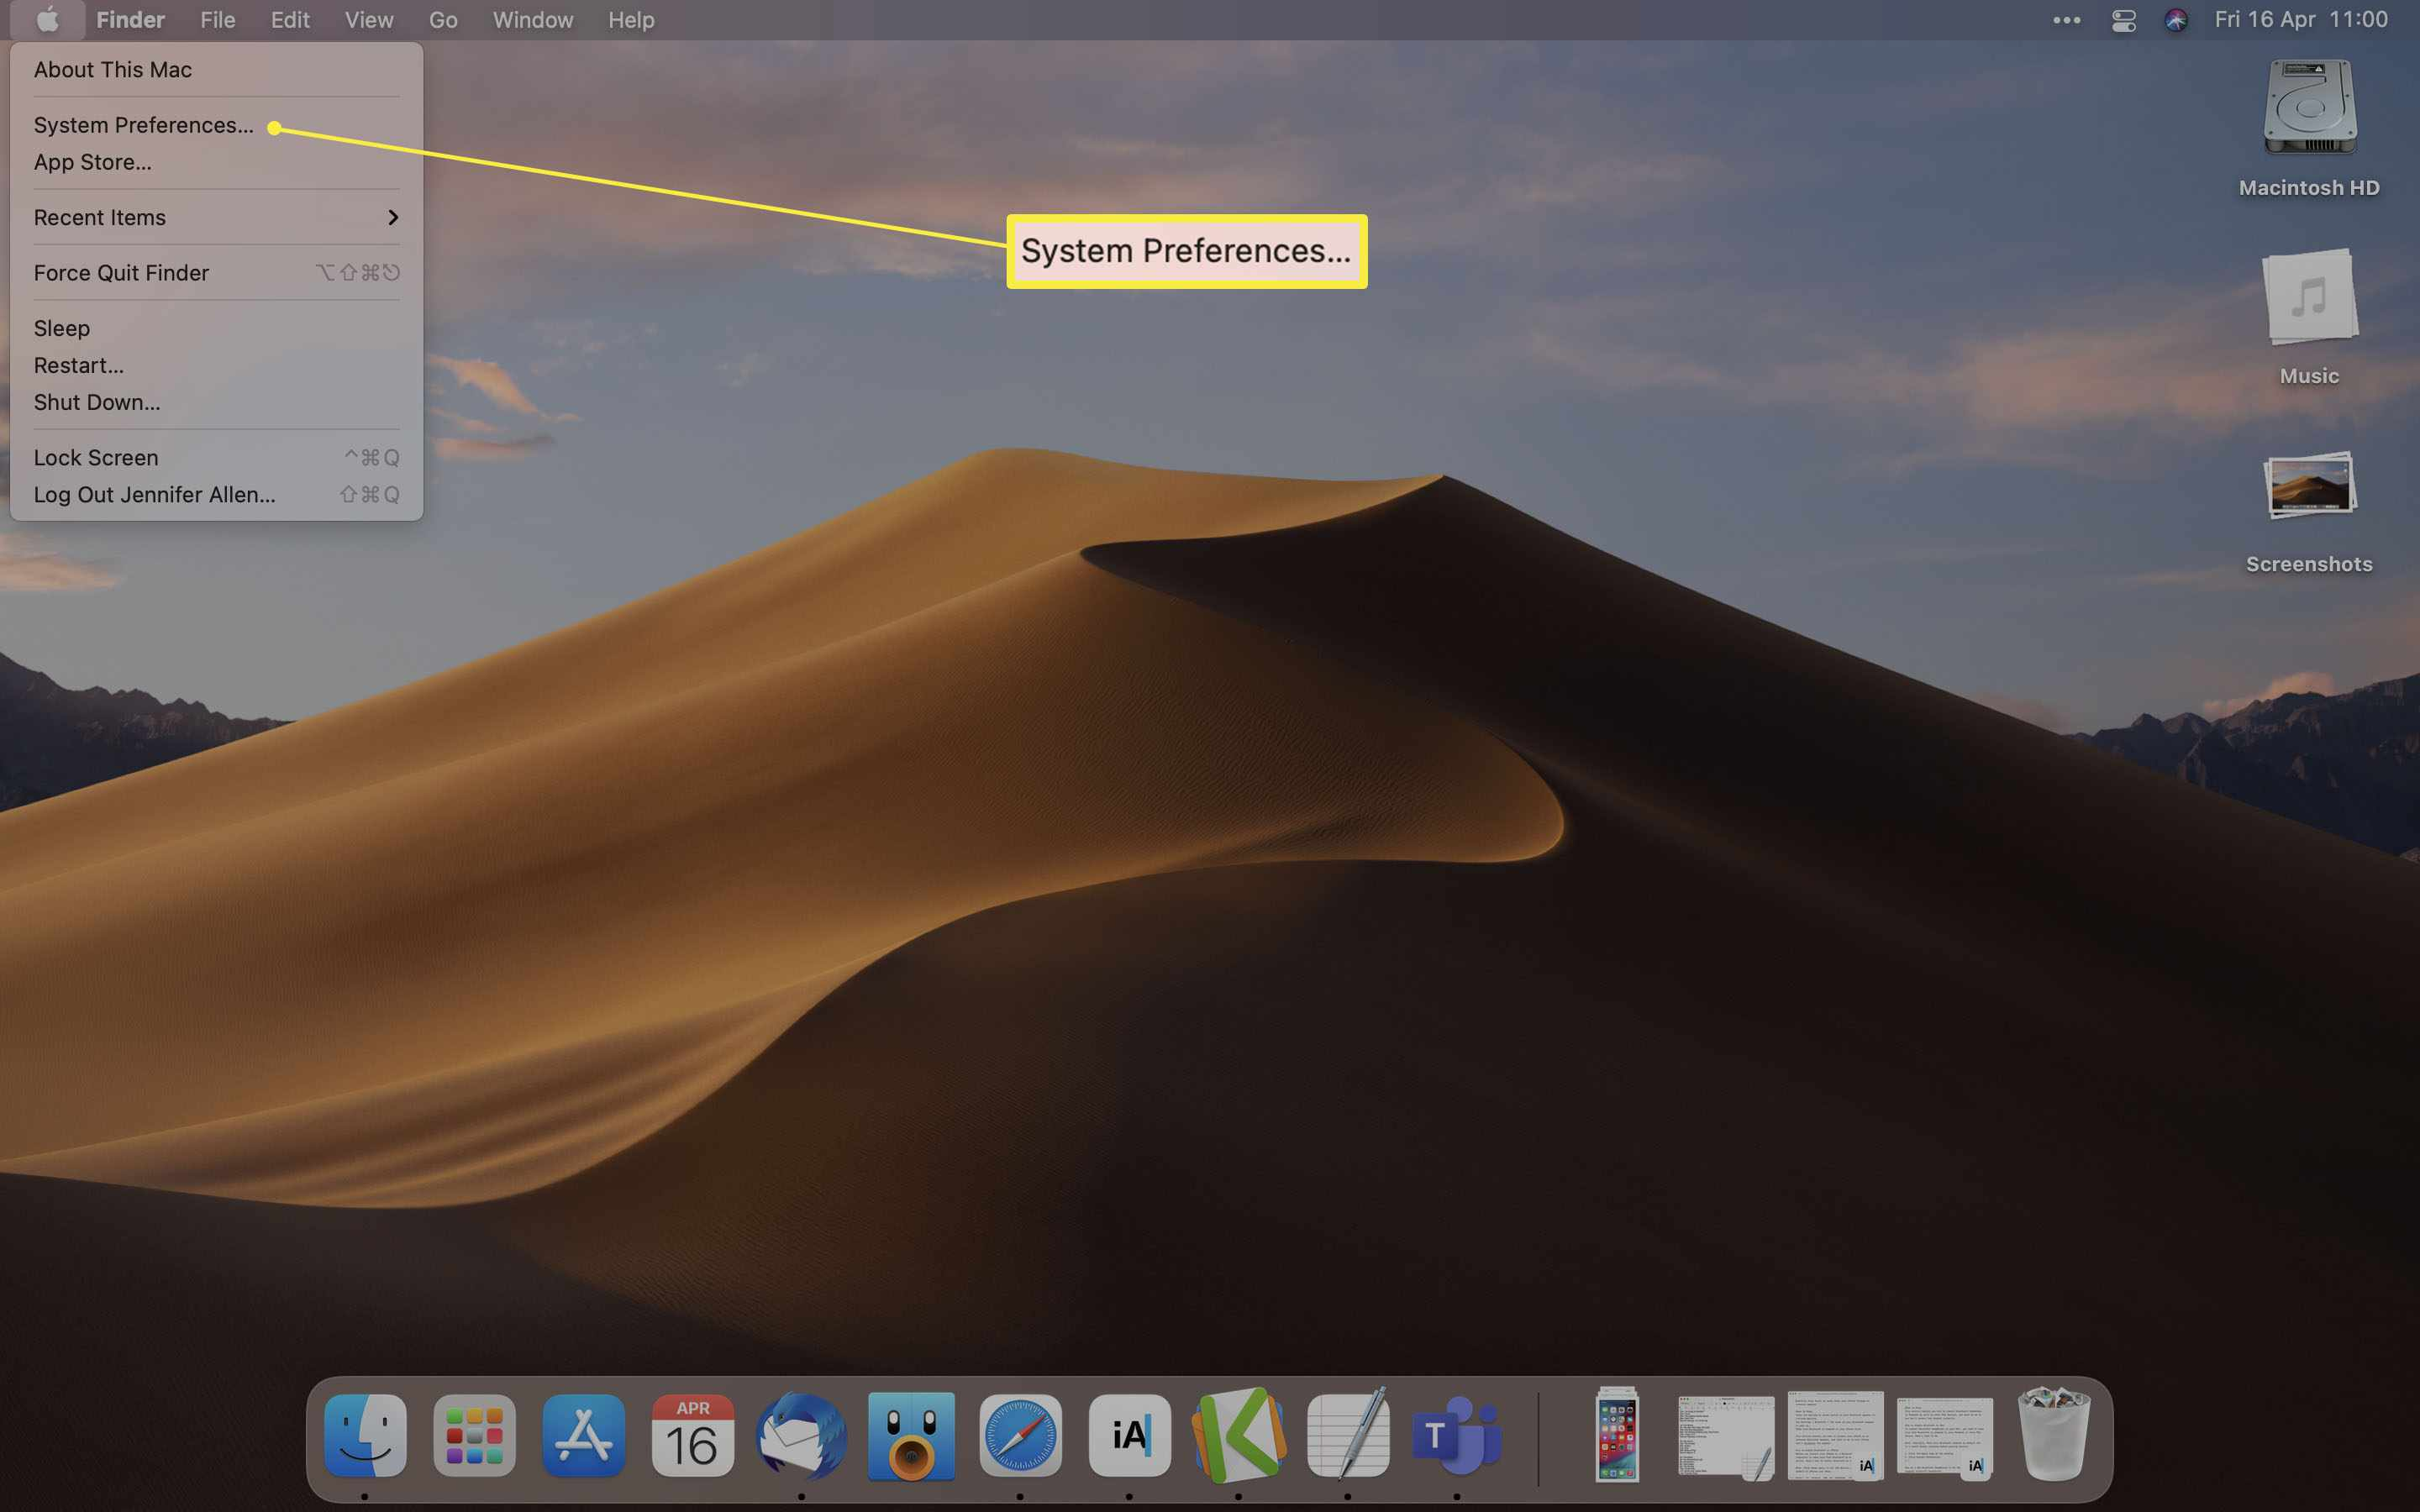 Apple Desktop with System Preferences highlighted